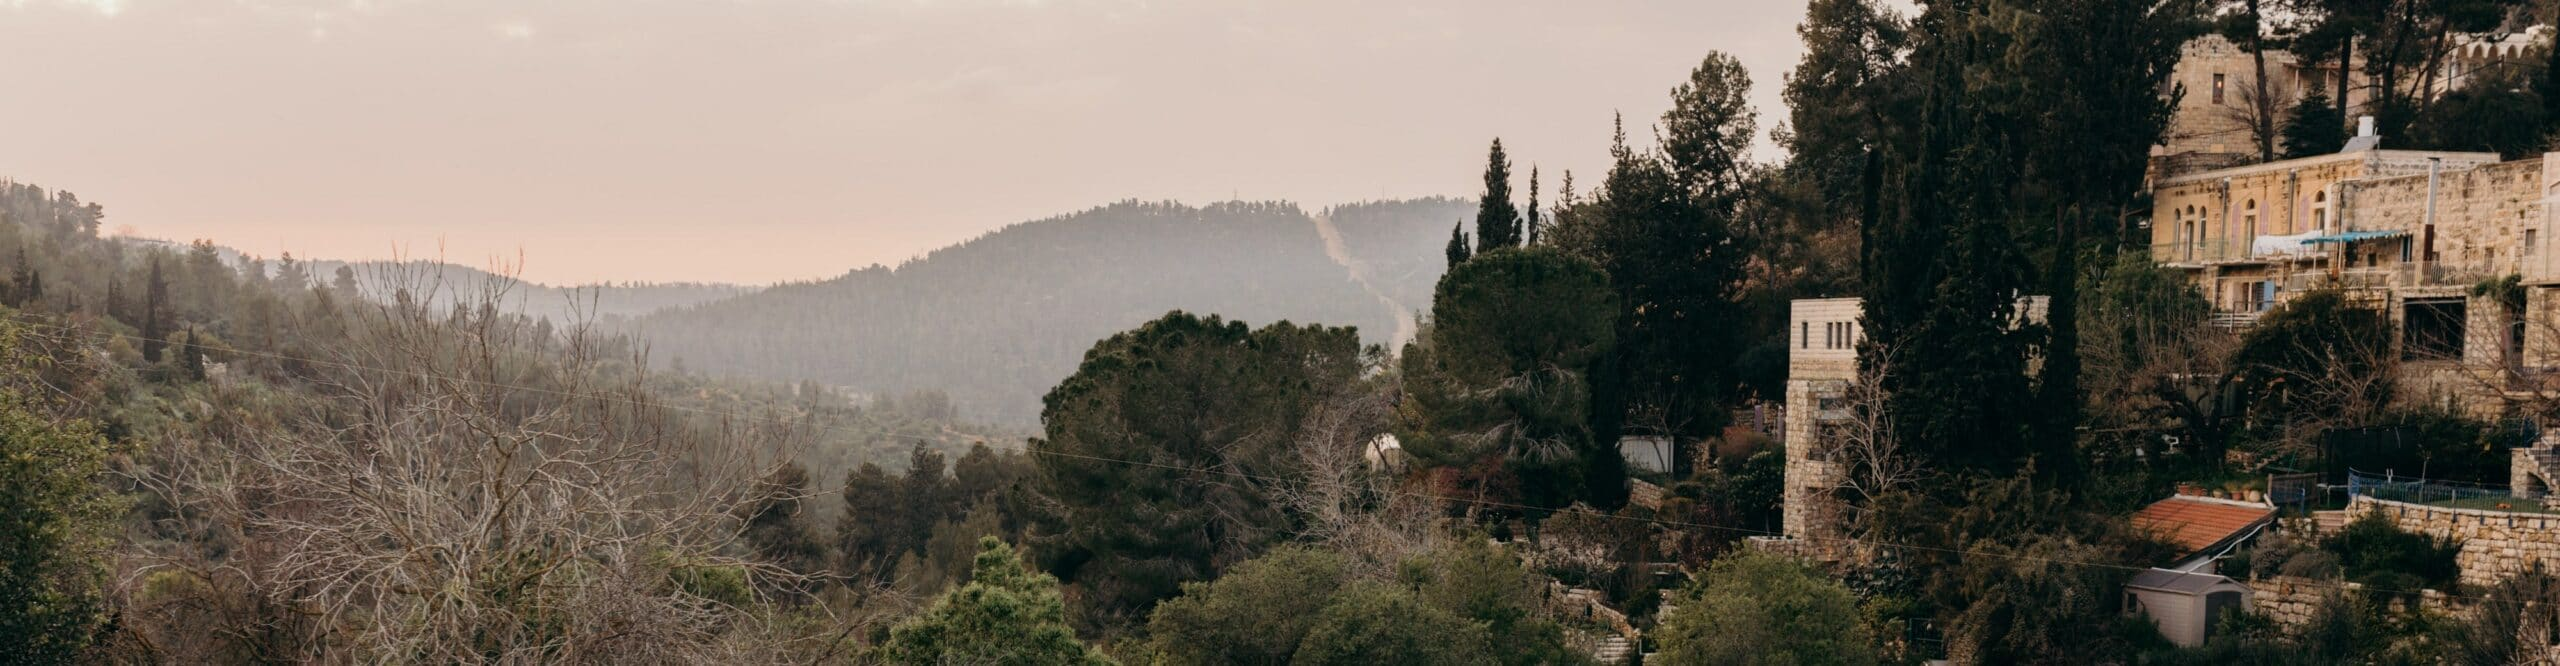 The area near Ein Karem, the place where the Church of St. John the Baptist is located in the Holy Land